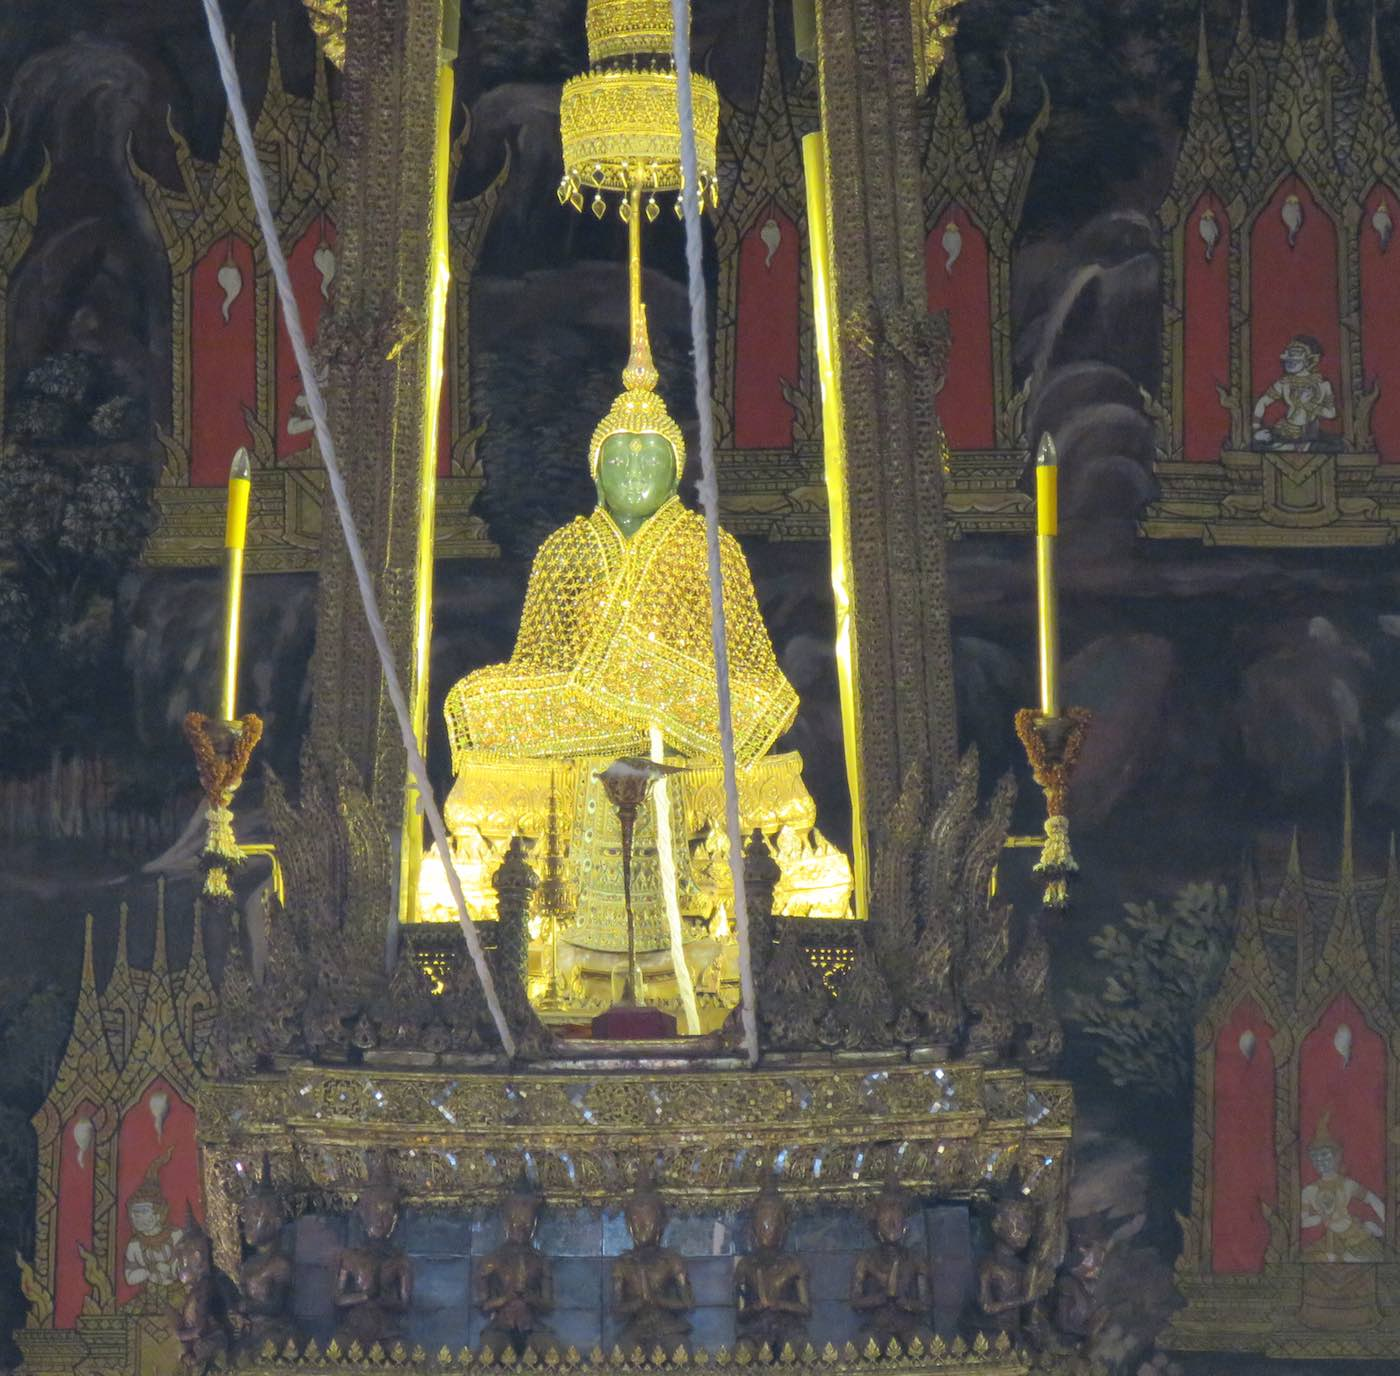 photo of the Emerald Buddha statue